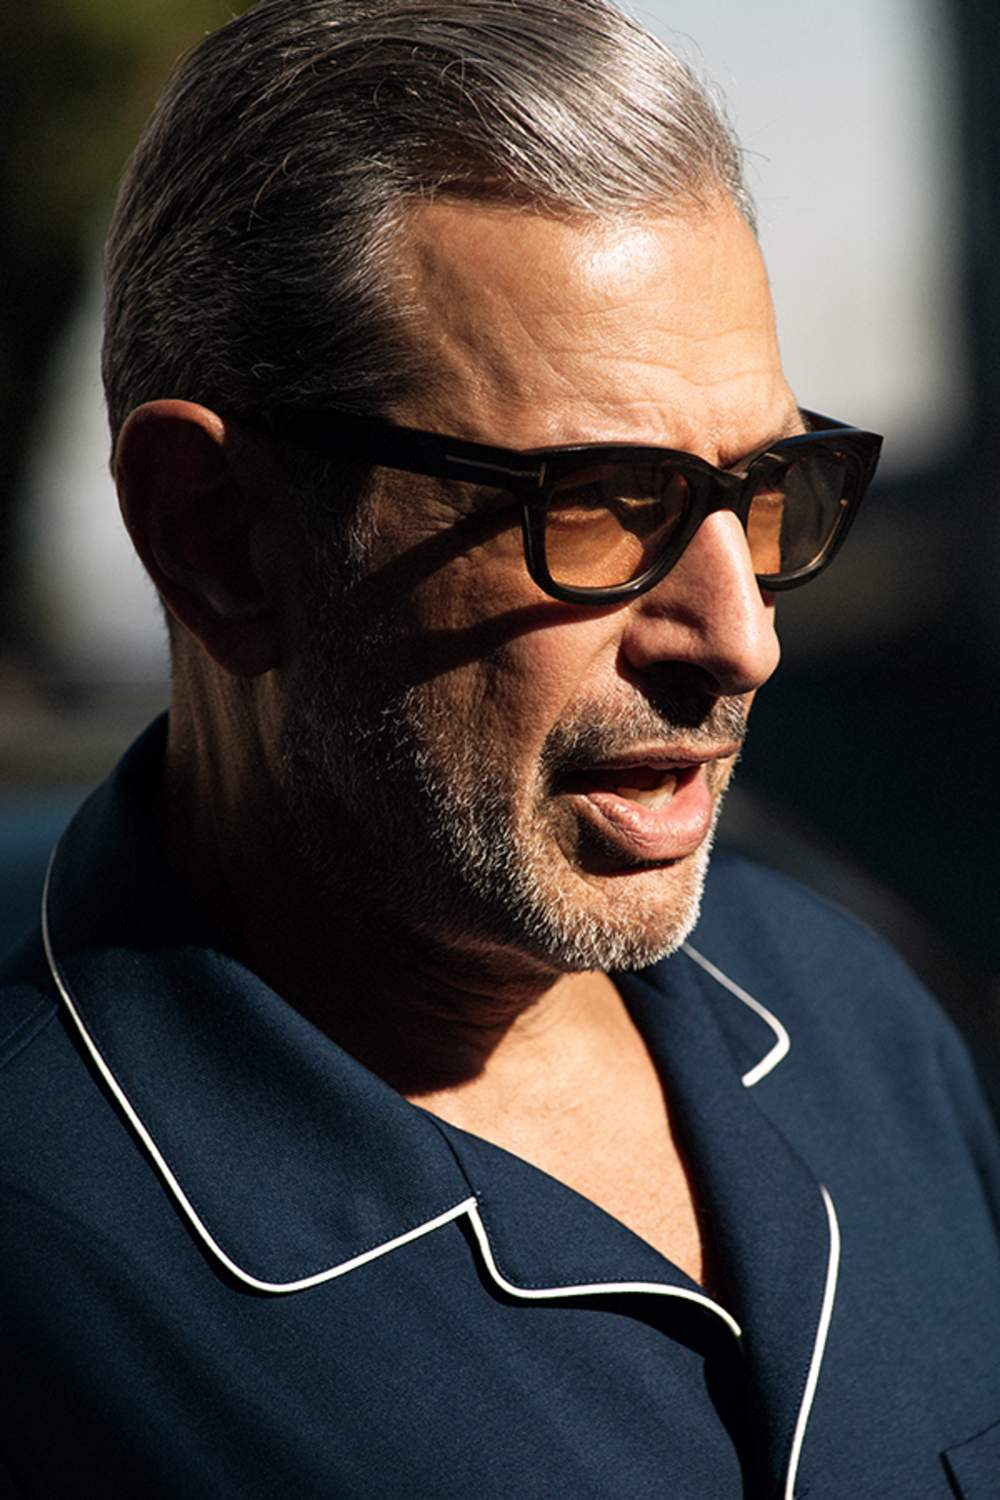 How Mr Jeff Goldblum Stays Forever Young The Look The